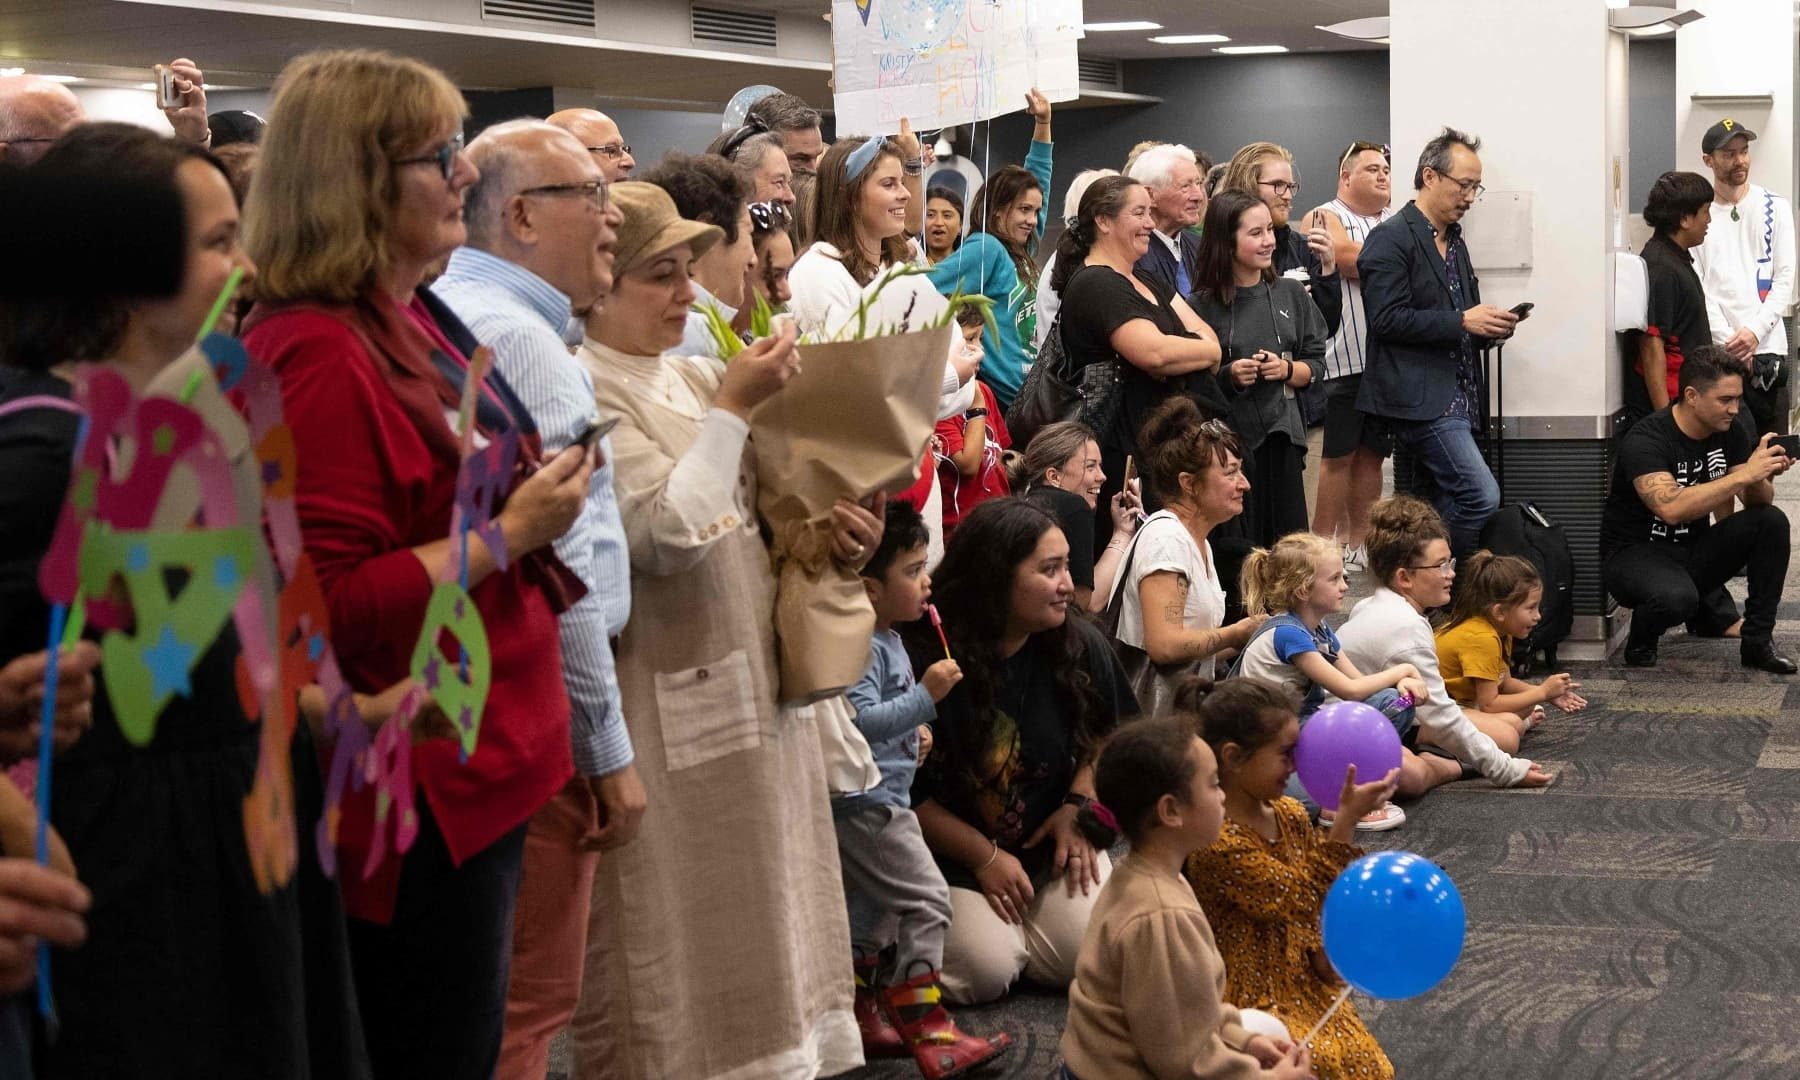 Families wait to be reunited as travellers arrive on the first flight from Sydney, in Wellington on April 19. — AFP